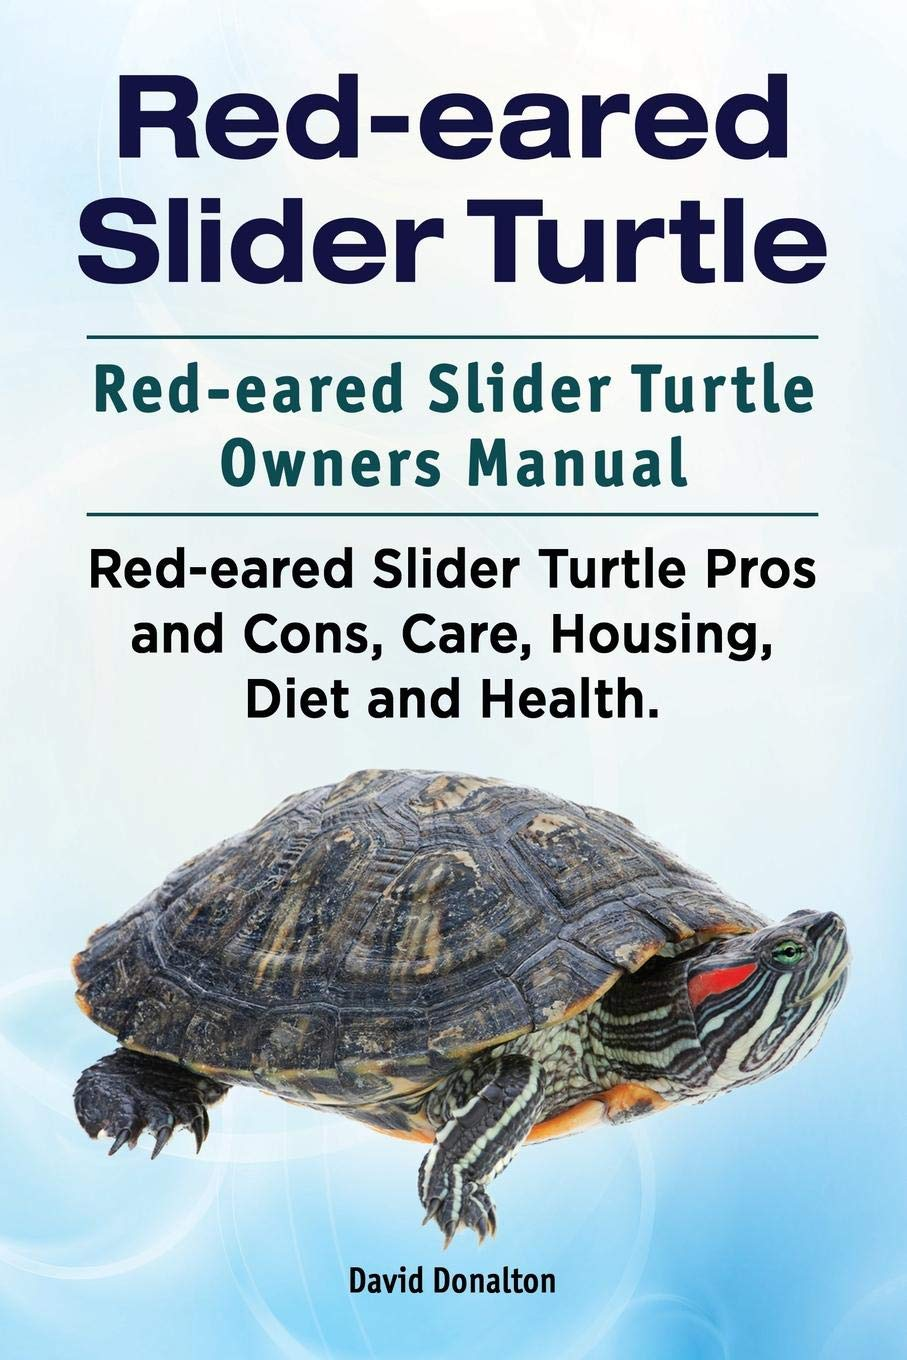 Buy Red-eared Slider Turtle  Red-eared Slider Turtle Owners Manual